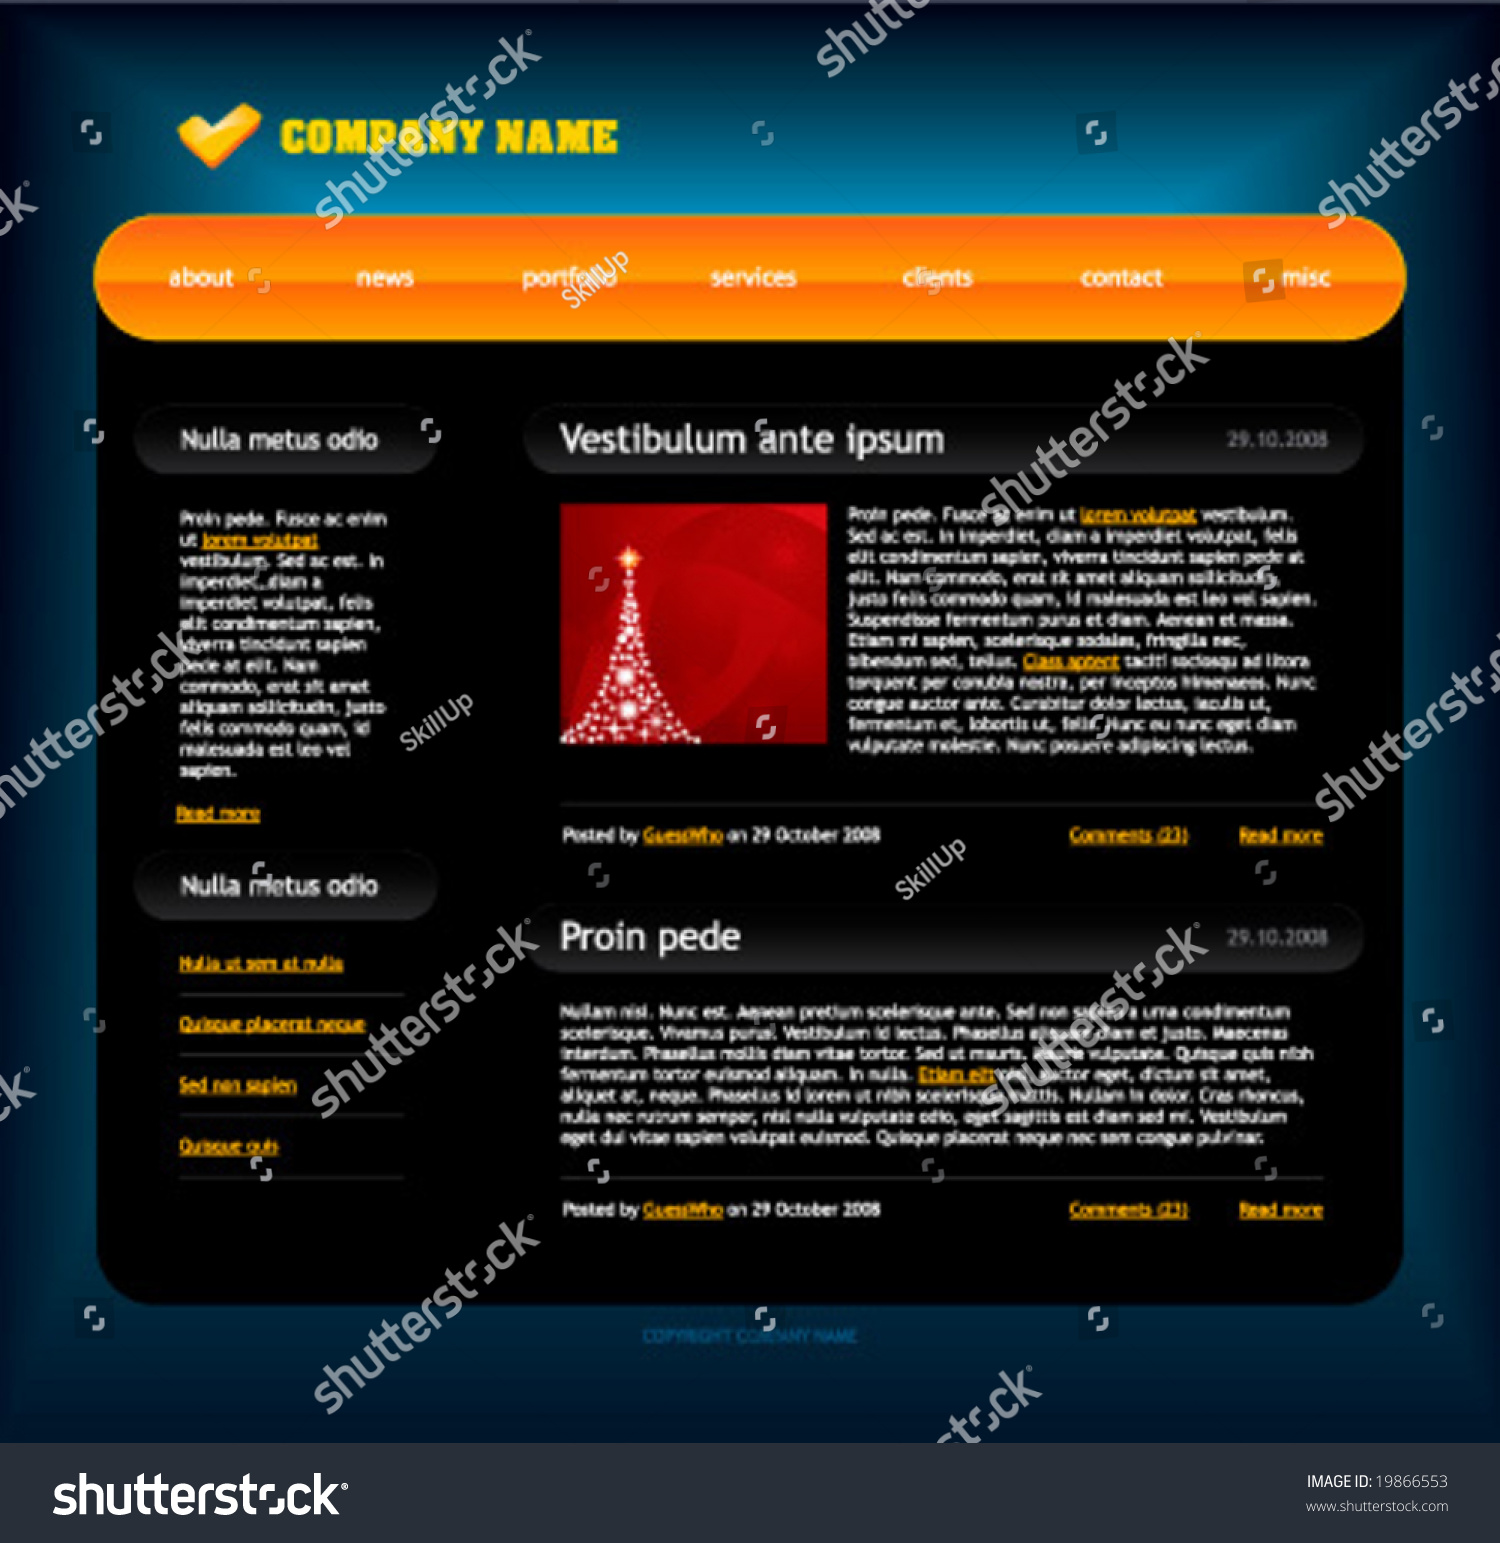 Website template easy use adobe flash stock vector 19866553 website template easy to use in adobe flash or illustrator to export it as a pronofoot35fo Gallery